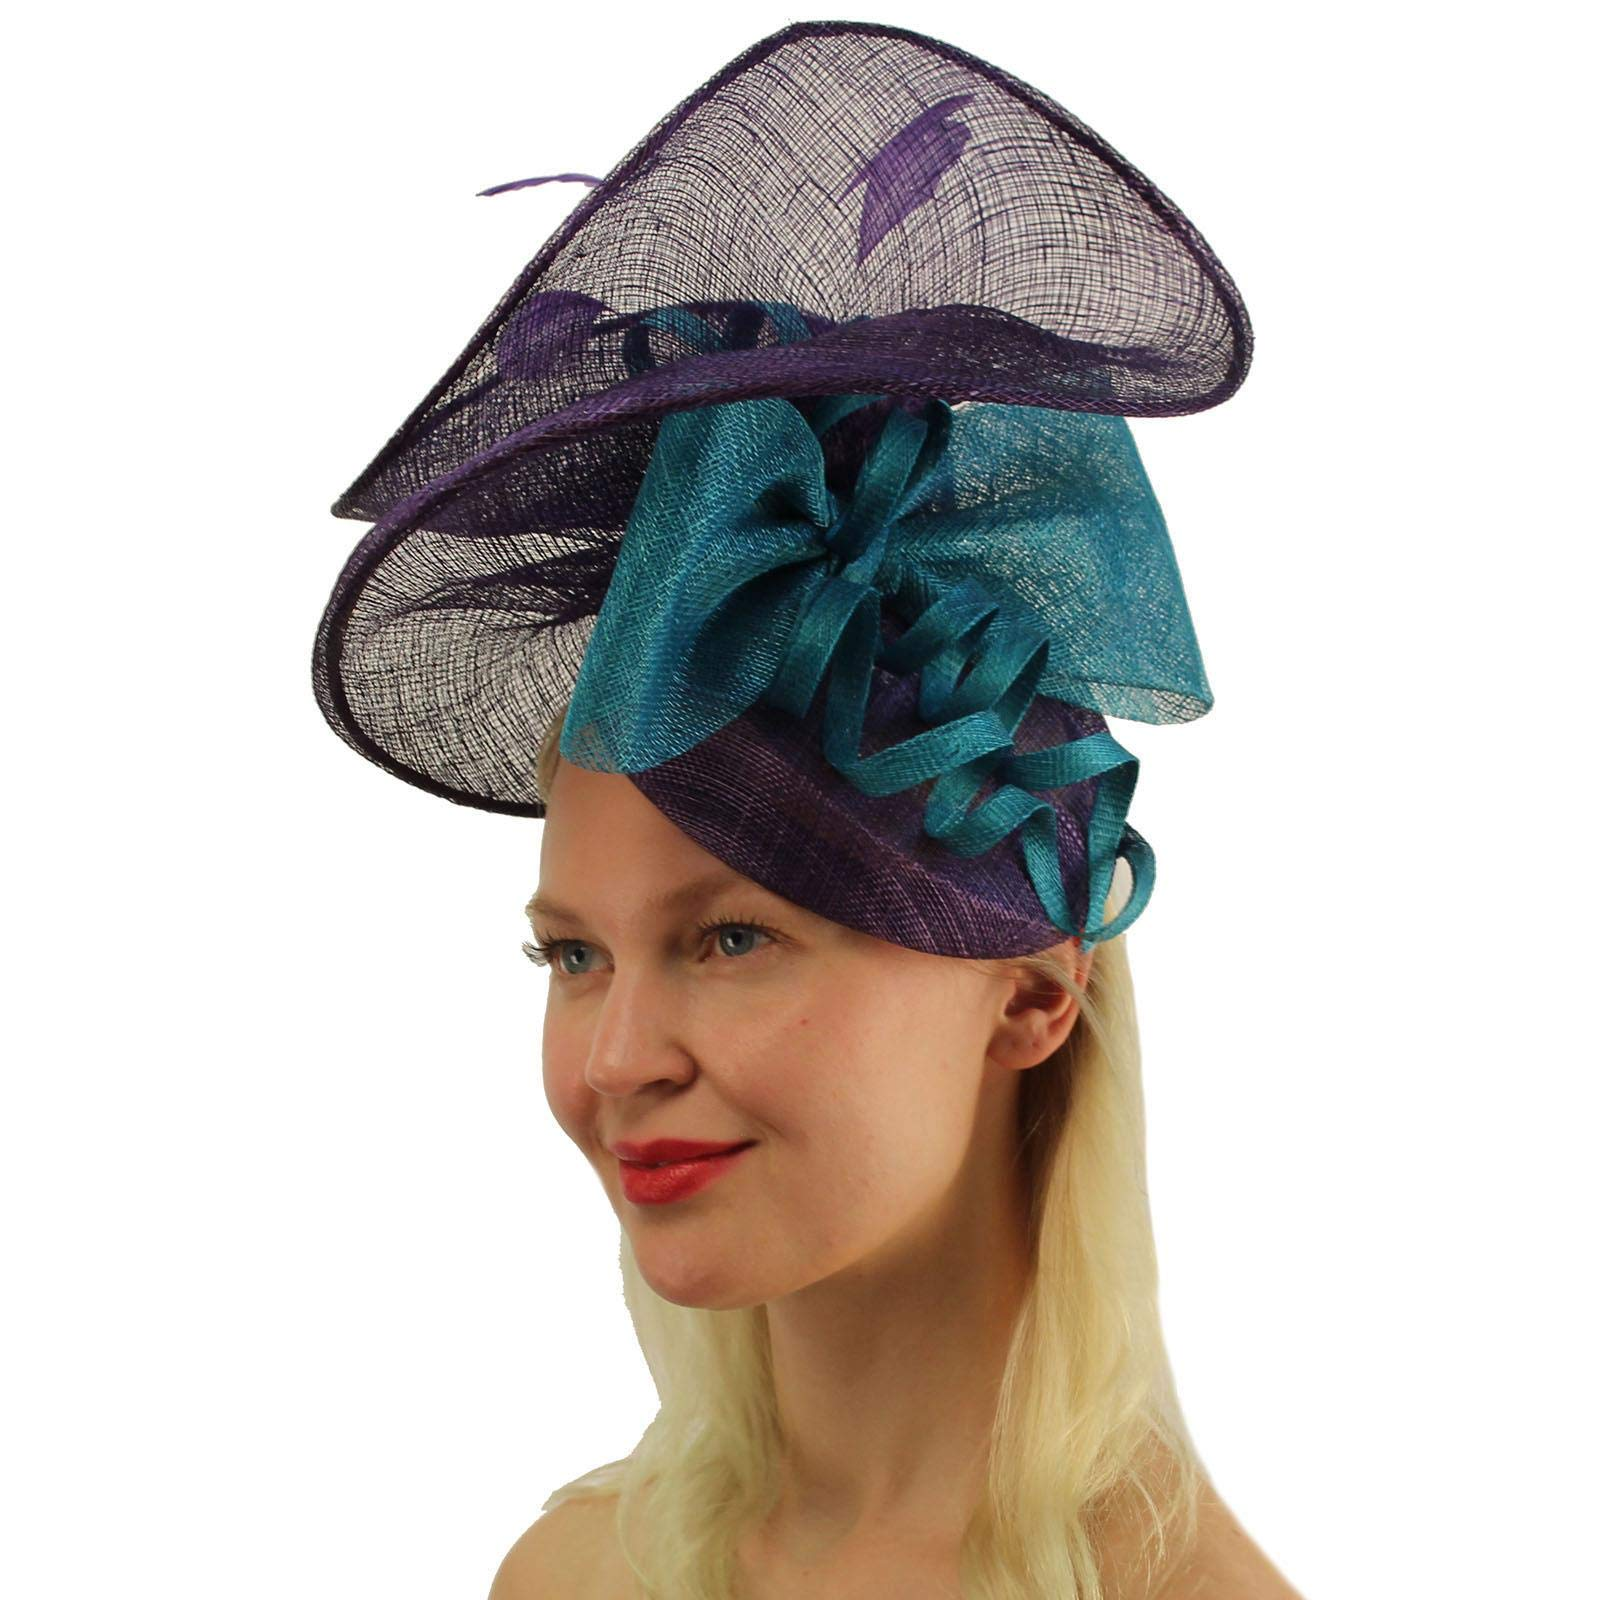 Fancy Sinamay Feathers Fascinators Headband Bridal Cocktail Derby Cap Hat Purple